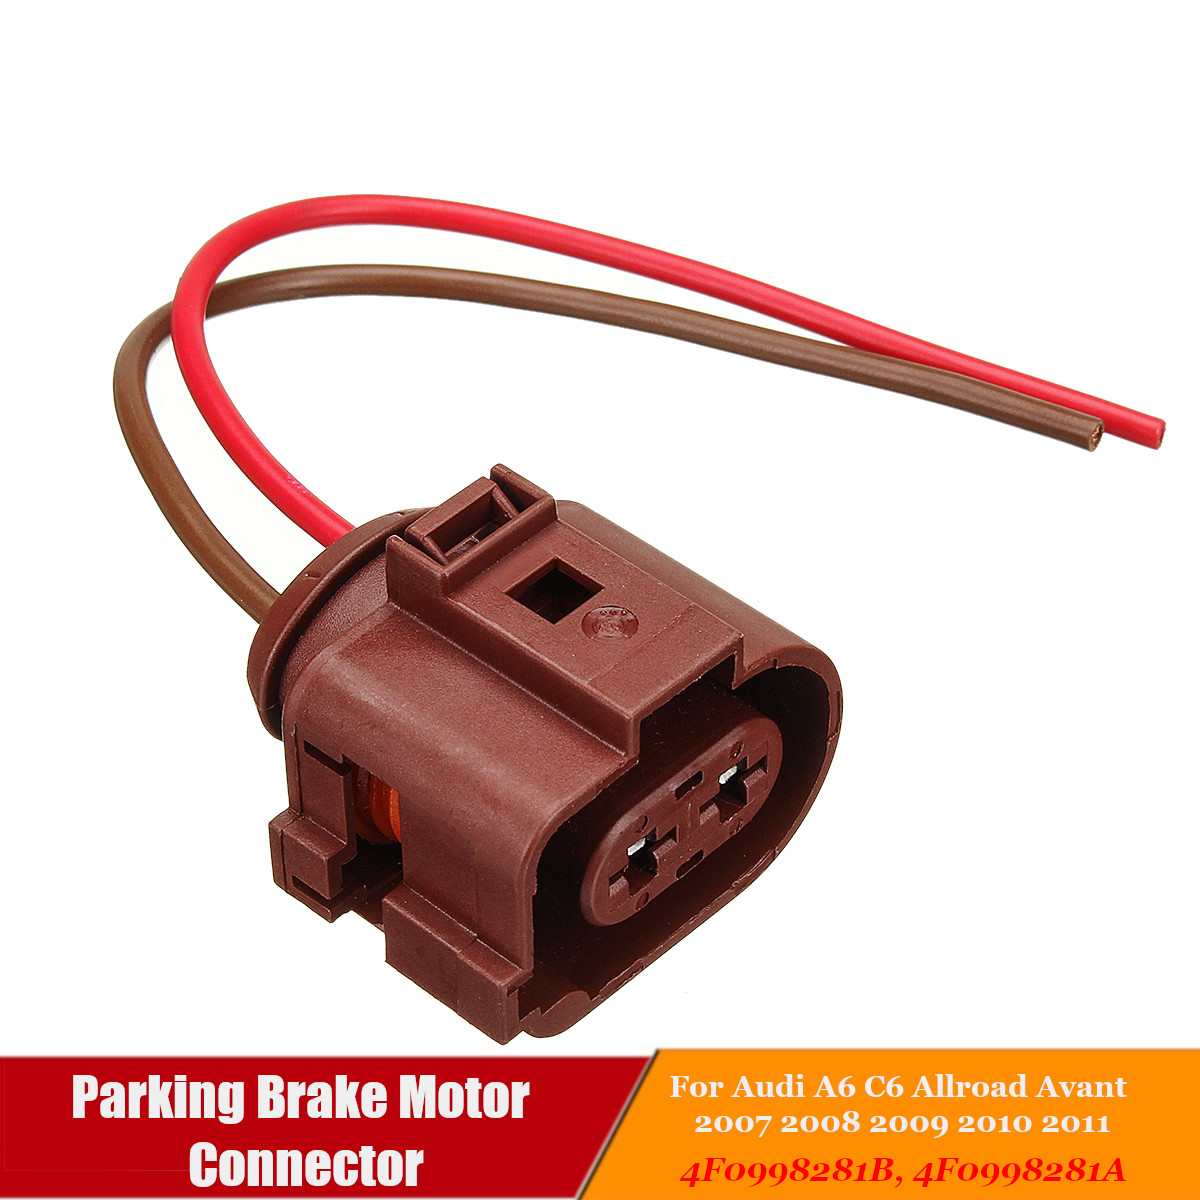 small resolution of 4f0998281b car parking brake motor wiring harness connector for audi a6 c6 allroad avant 2007